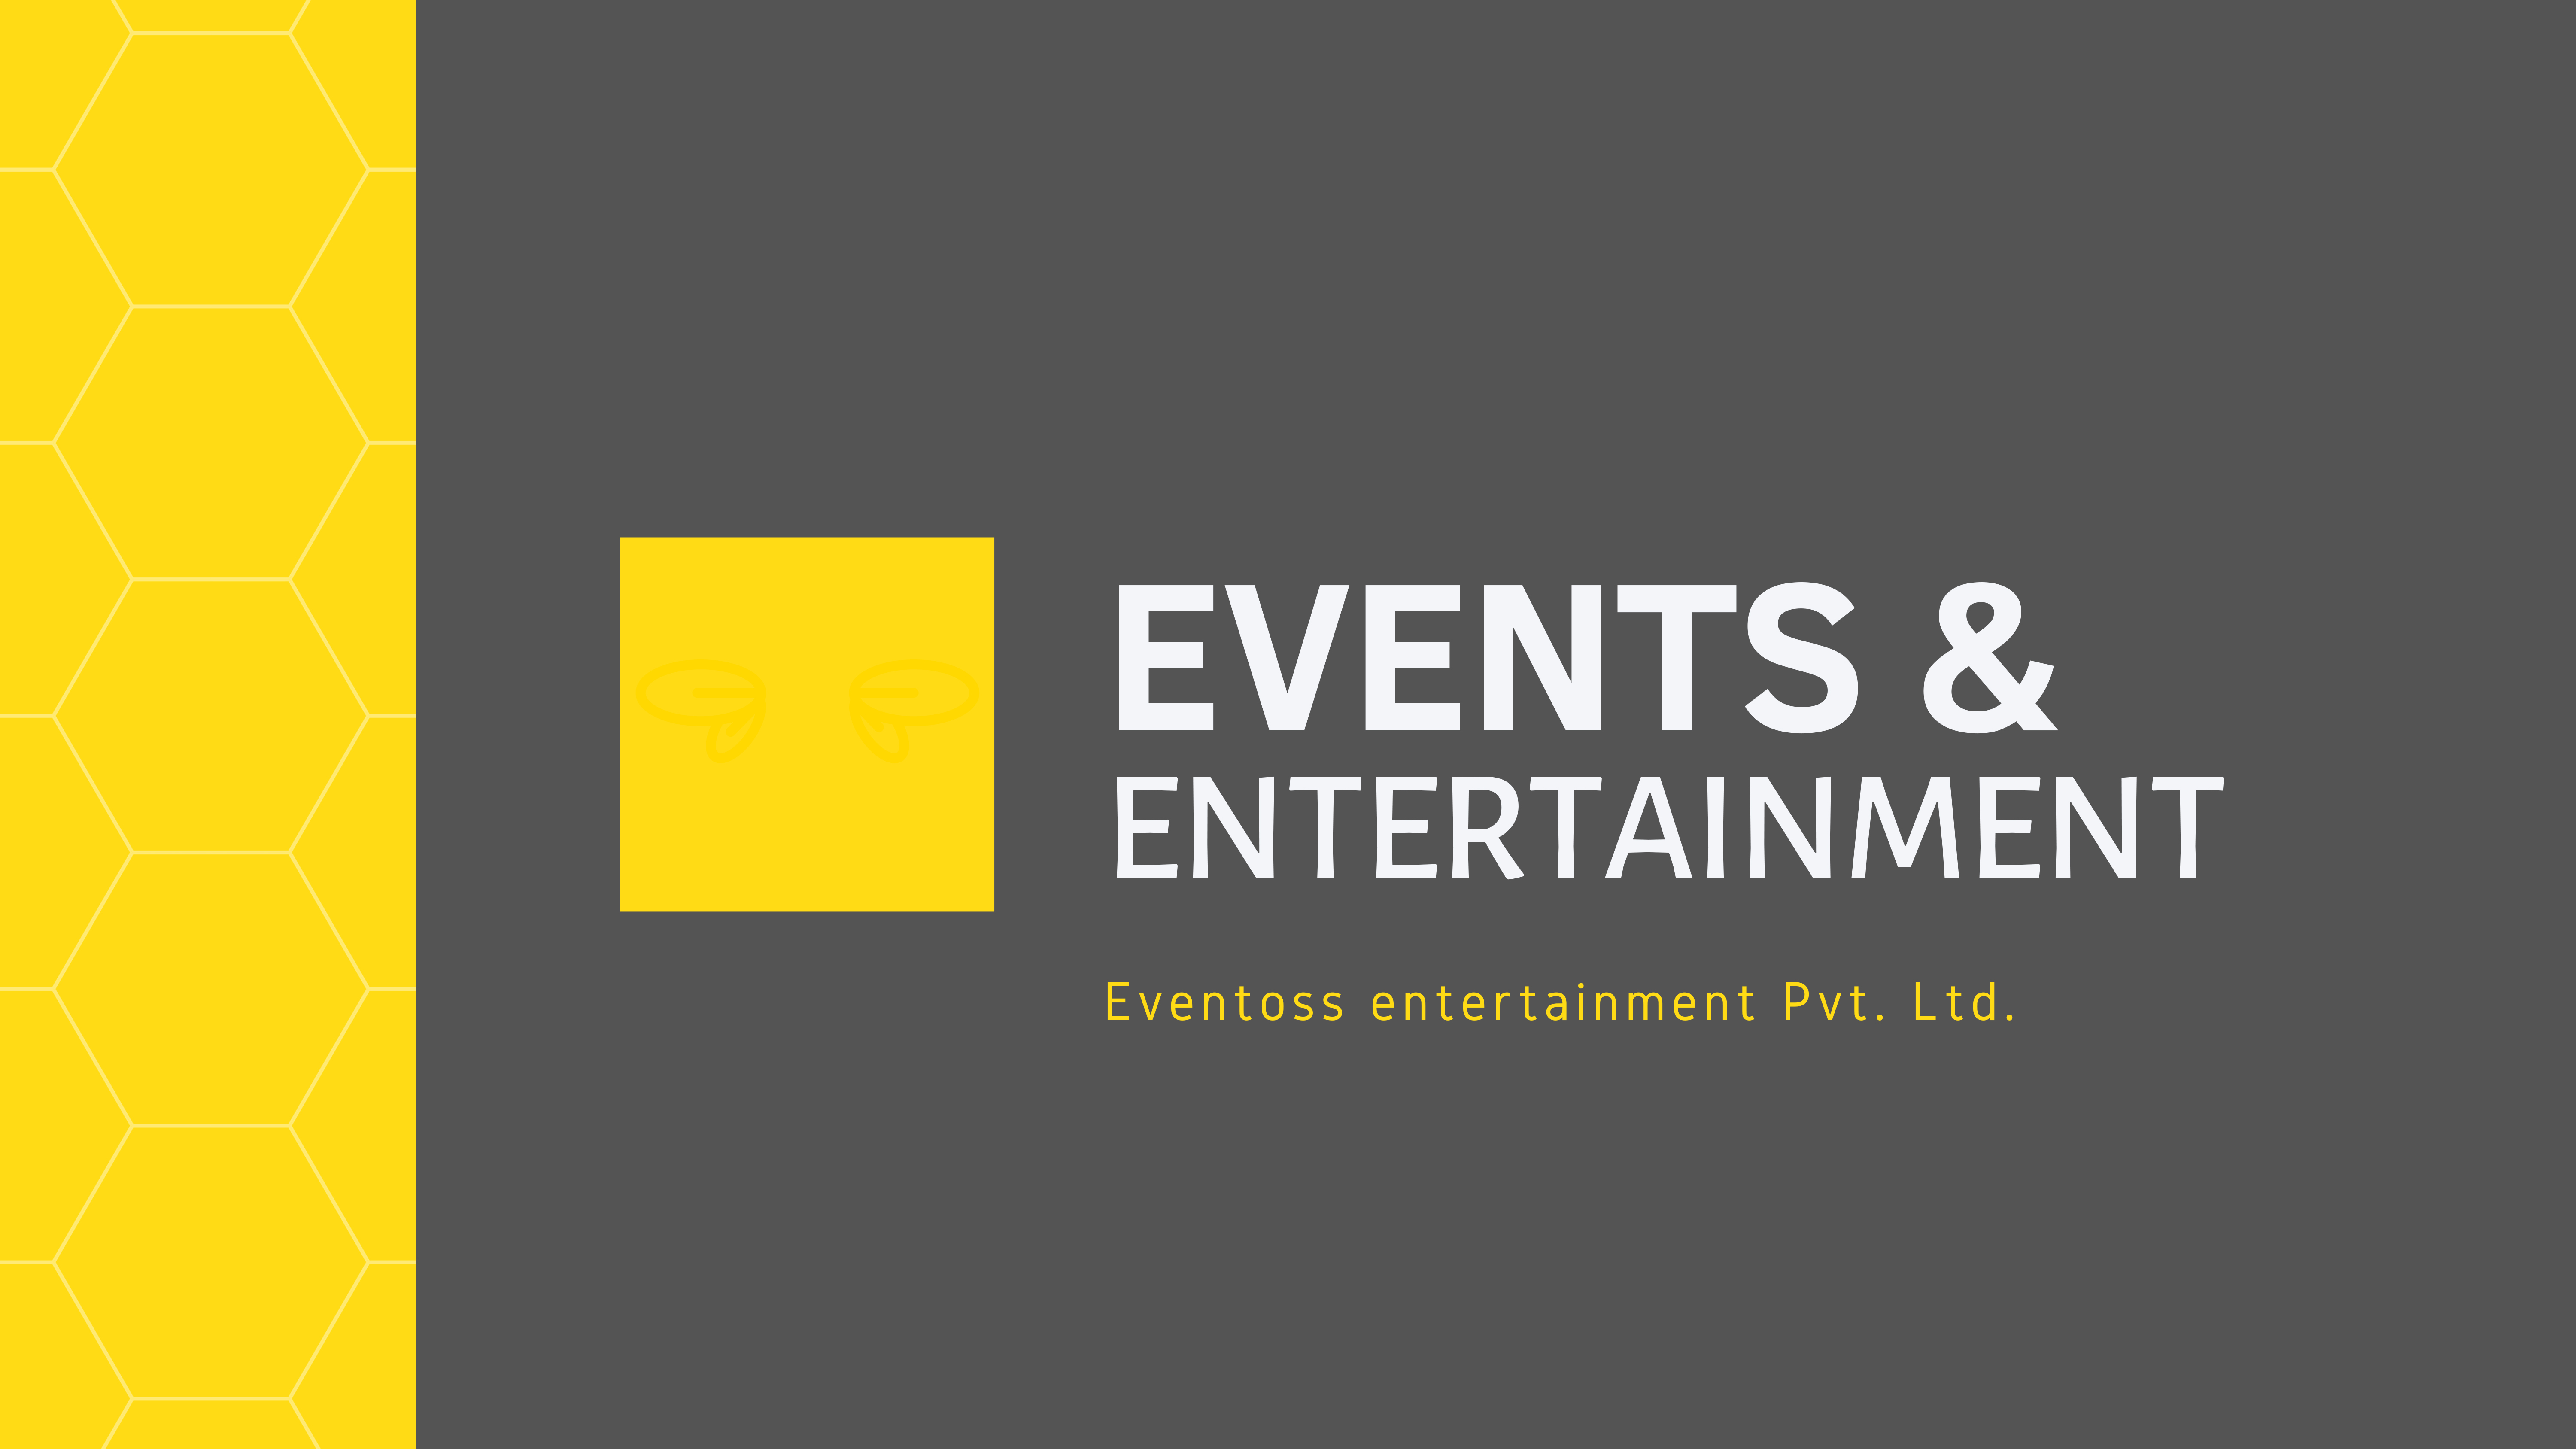 |Best Event Management Company in Patna, Delhi, Ranchi | Event Management Companies in Patna, Delhi, Ranchi | Top Event Management Companies in Patna, Delhi, Ranchi | Top 10 Event Management Companies in Bihar, Jharkhand, New Delhi | Top List of Event Companies in Bihar, Delhi, Ranchi | Event Organisers in Patna, Delhi, Ranchi | Event Organizers in Patna, Delhi, Ranchi | Party Organisers in Patna, Delhi, Ranchi | Party Planner in Patna, Delhi, Ranchi | Event Planners in Patna, Delhi, Ranchi | Corporate Event Organisers in Patna, Delhi, Ranchi | Brand Promotion Agencies in Patna, Delhi, Ranchi | Event Agencies in Patna, Delhi, Ranchi | Event Service Providers in Patna, Delhi, Ranchi | Advertising Agencies in Patna, Delhi, Ranchi | Brand Activations Agencies in Patna, Delhi, Ranchi | BTL Promotion Agencies in Patna, Delhi, Ranchi | Social Media Agency in Patna, Ranchi, Delhi | Digital Marketing Agency in Patna, Delhi, Ranchi | | Advertising Company In Delhi, Patna Ranchi | Radio Ads Company In Patna | TV Ads Company In Delhi | Digital Ads Company In Delhi | Marketing Consultant In Patna, Delhi, Ranchi | Marketing Company In Delhi | Newspaper Ads Company In Patna | Corporate Marketing Company In Delhi | Digital Marketing Company In Delhi, Patna, Ranchi | Newspaper Ads Company In Delhi | Corporate Marketing Company In Patna | Advertising Company In Patna |